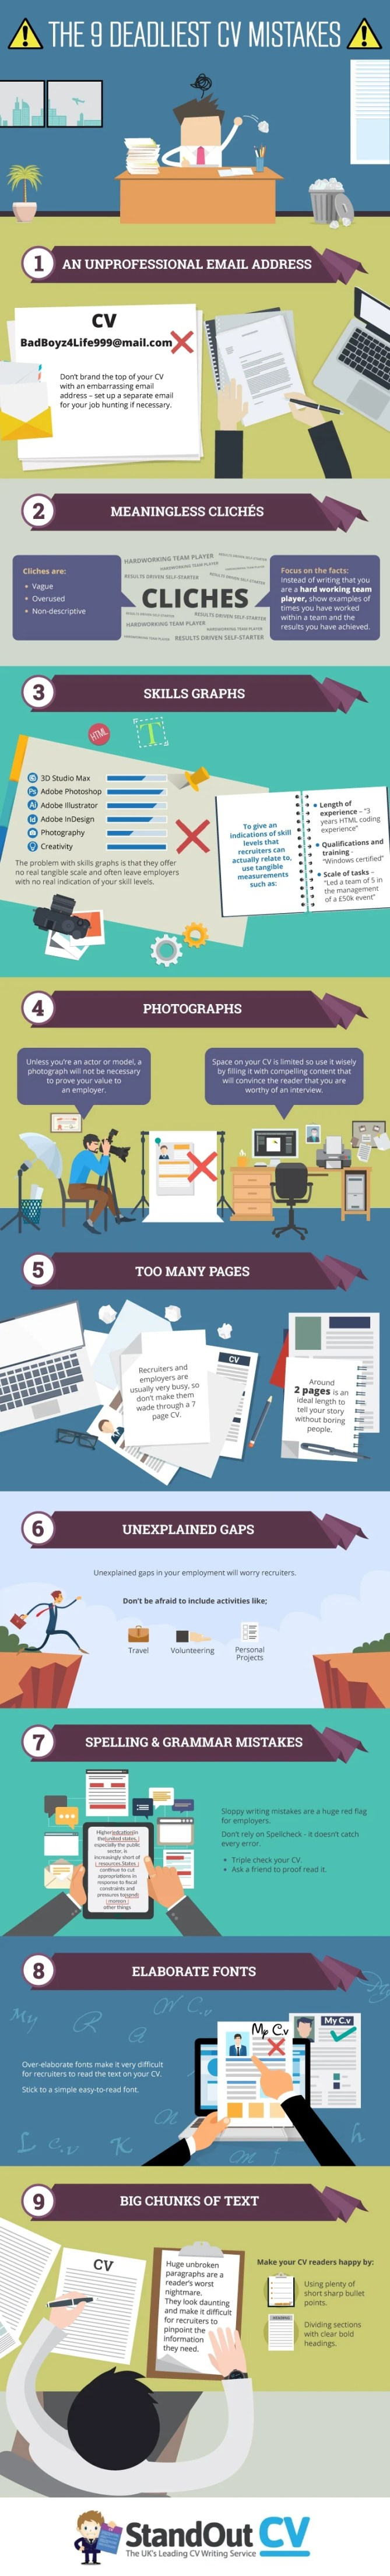 worst-resume-mistakes-infographic.jpg